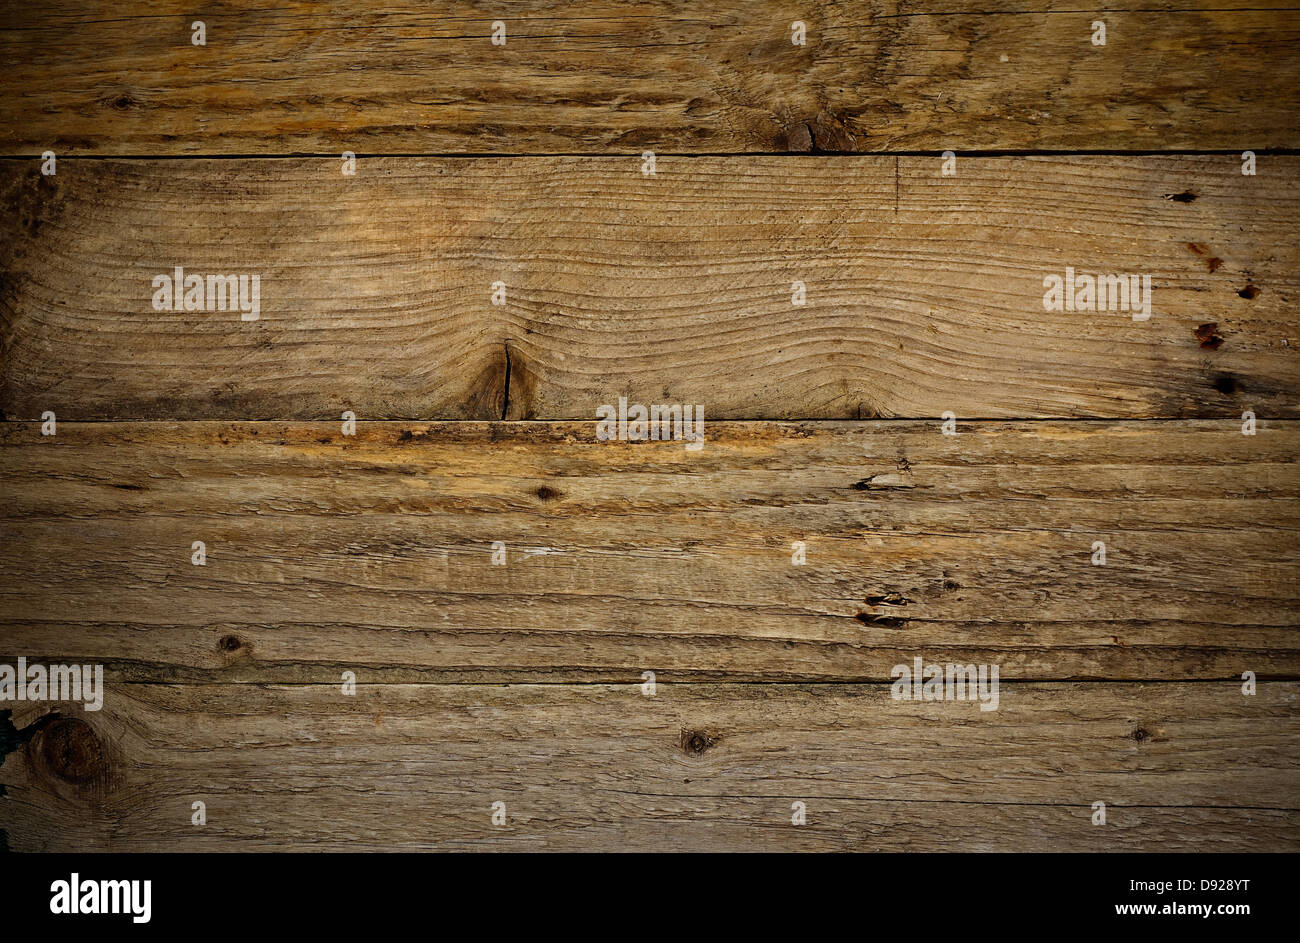 Worn Down Wooden Planks ~ Worn wood plank stock photos